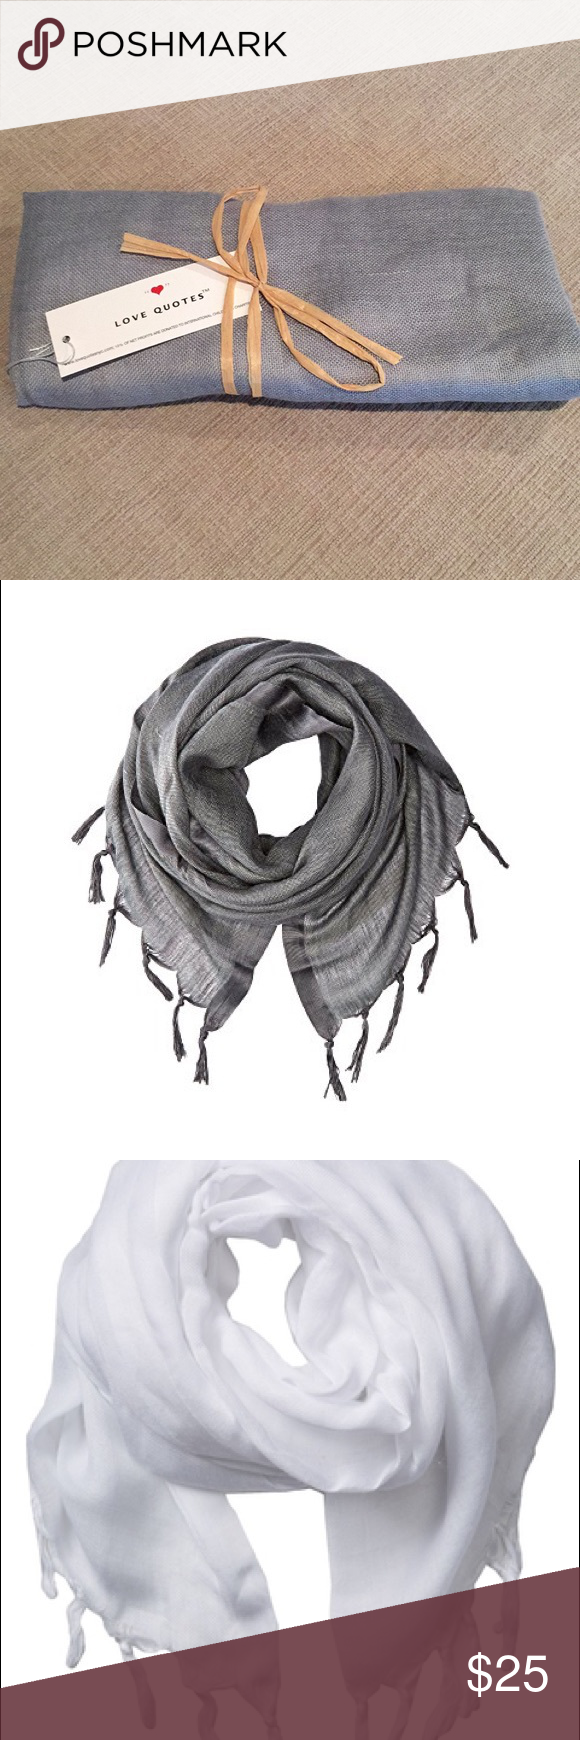 Love Quotes Scarf Love Quotes Scarf In Grey New With Tags  Scarf Wrap Tassels And